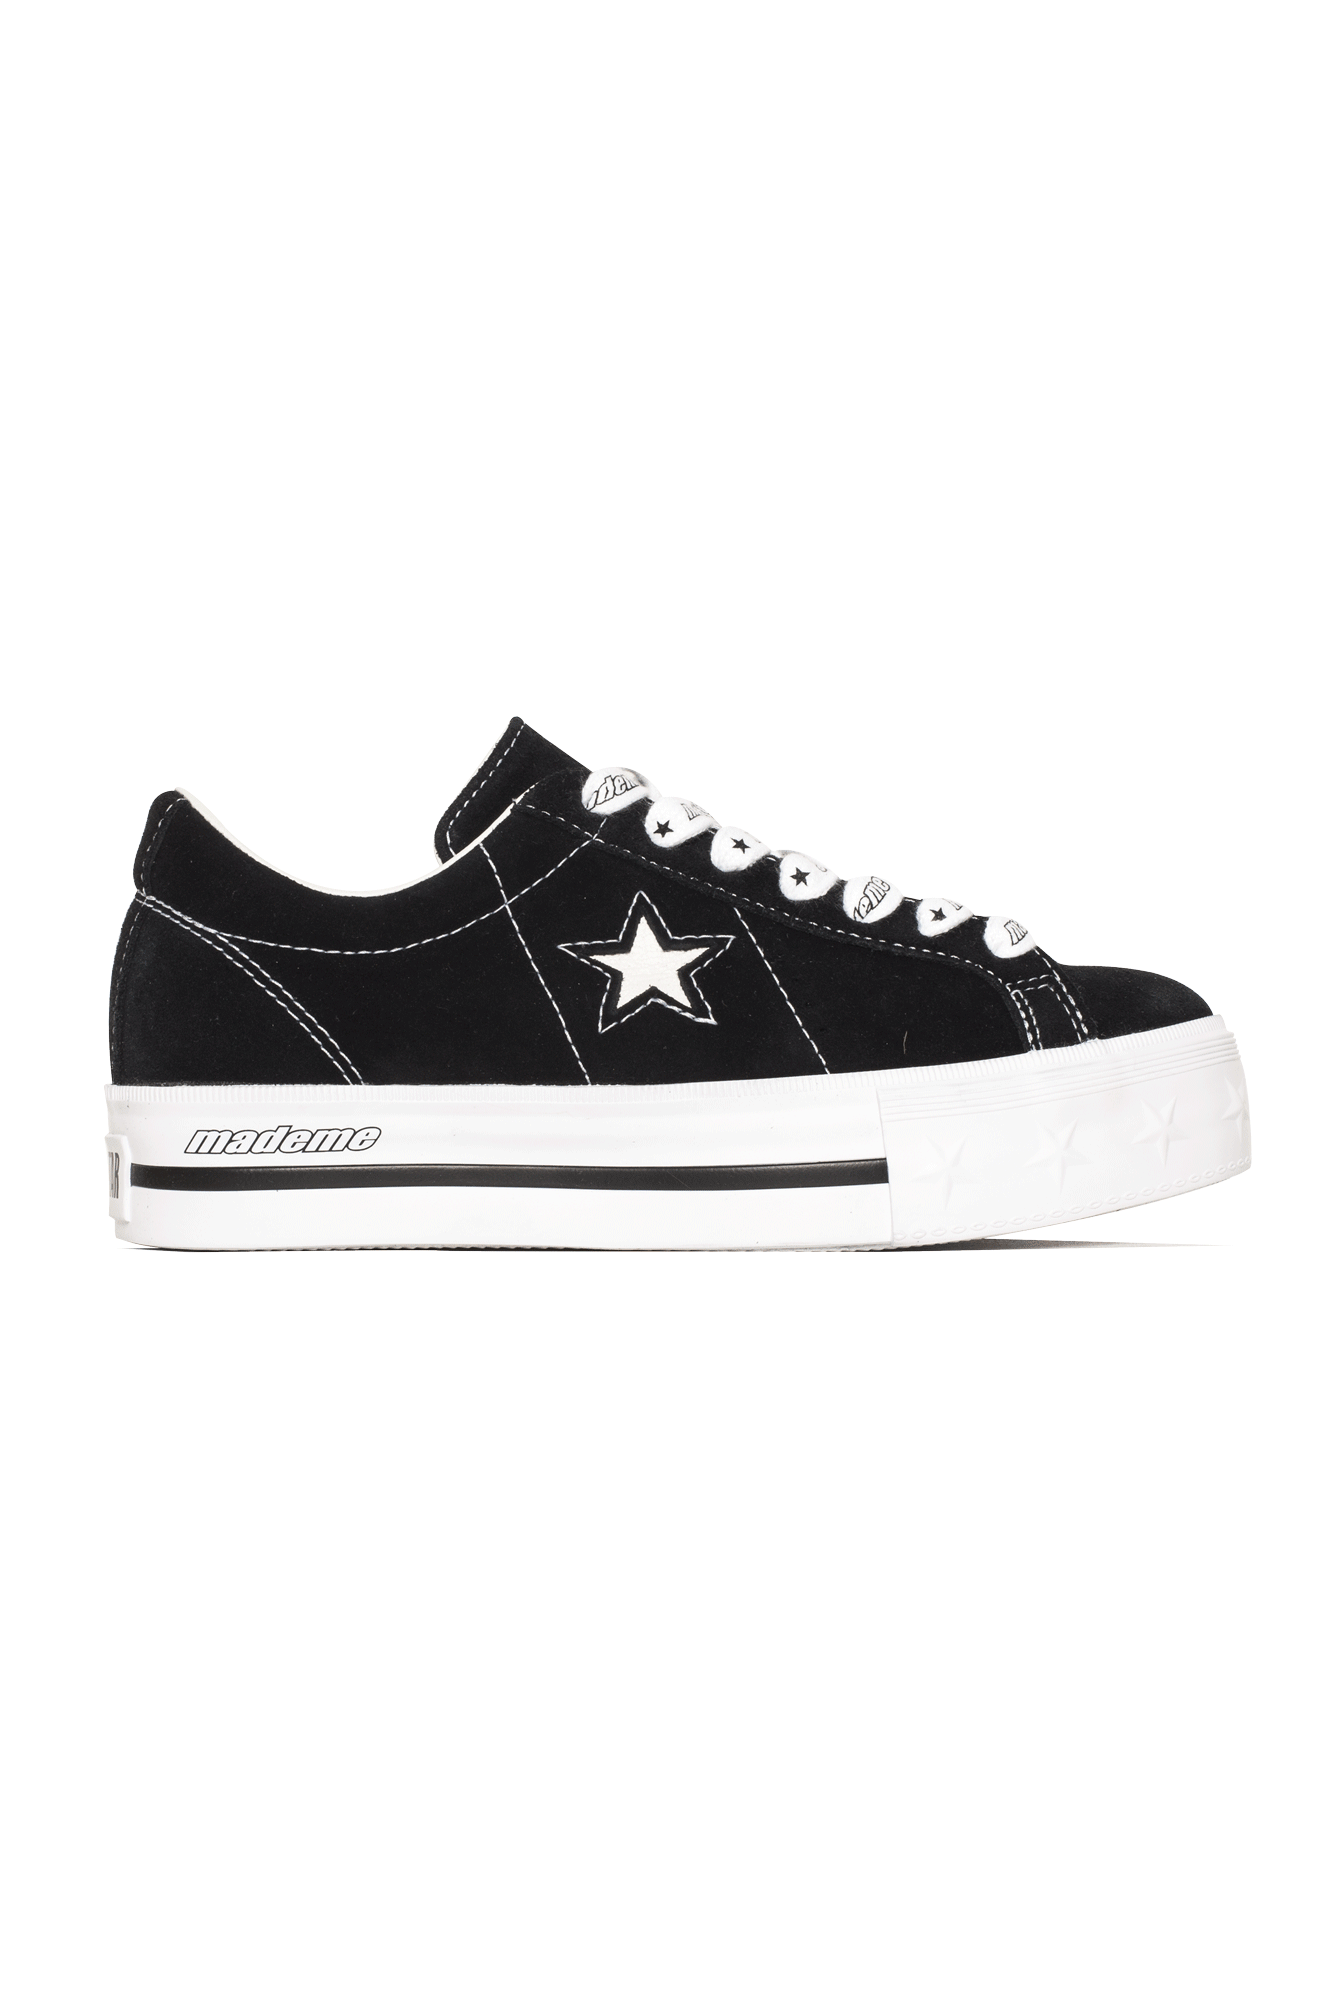 Converse Sneakers One Star Platform Ox X MadeMe Black 562959C#000#C0010#5 - One Block Down